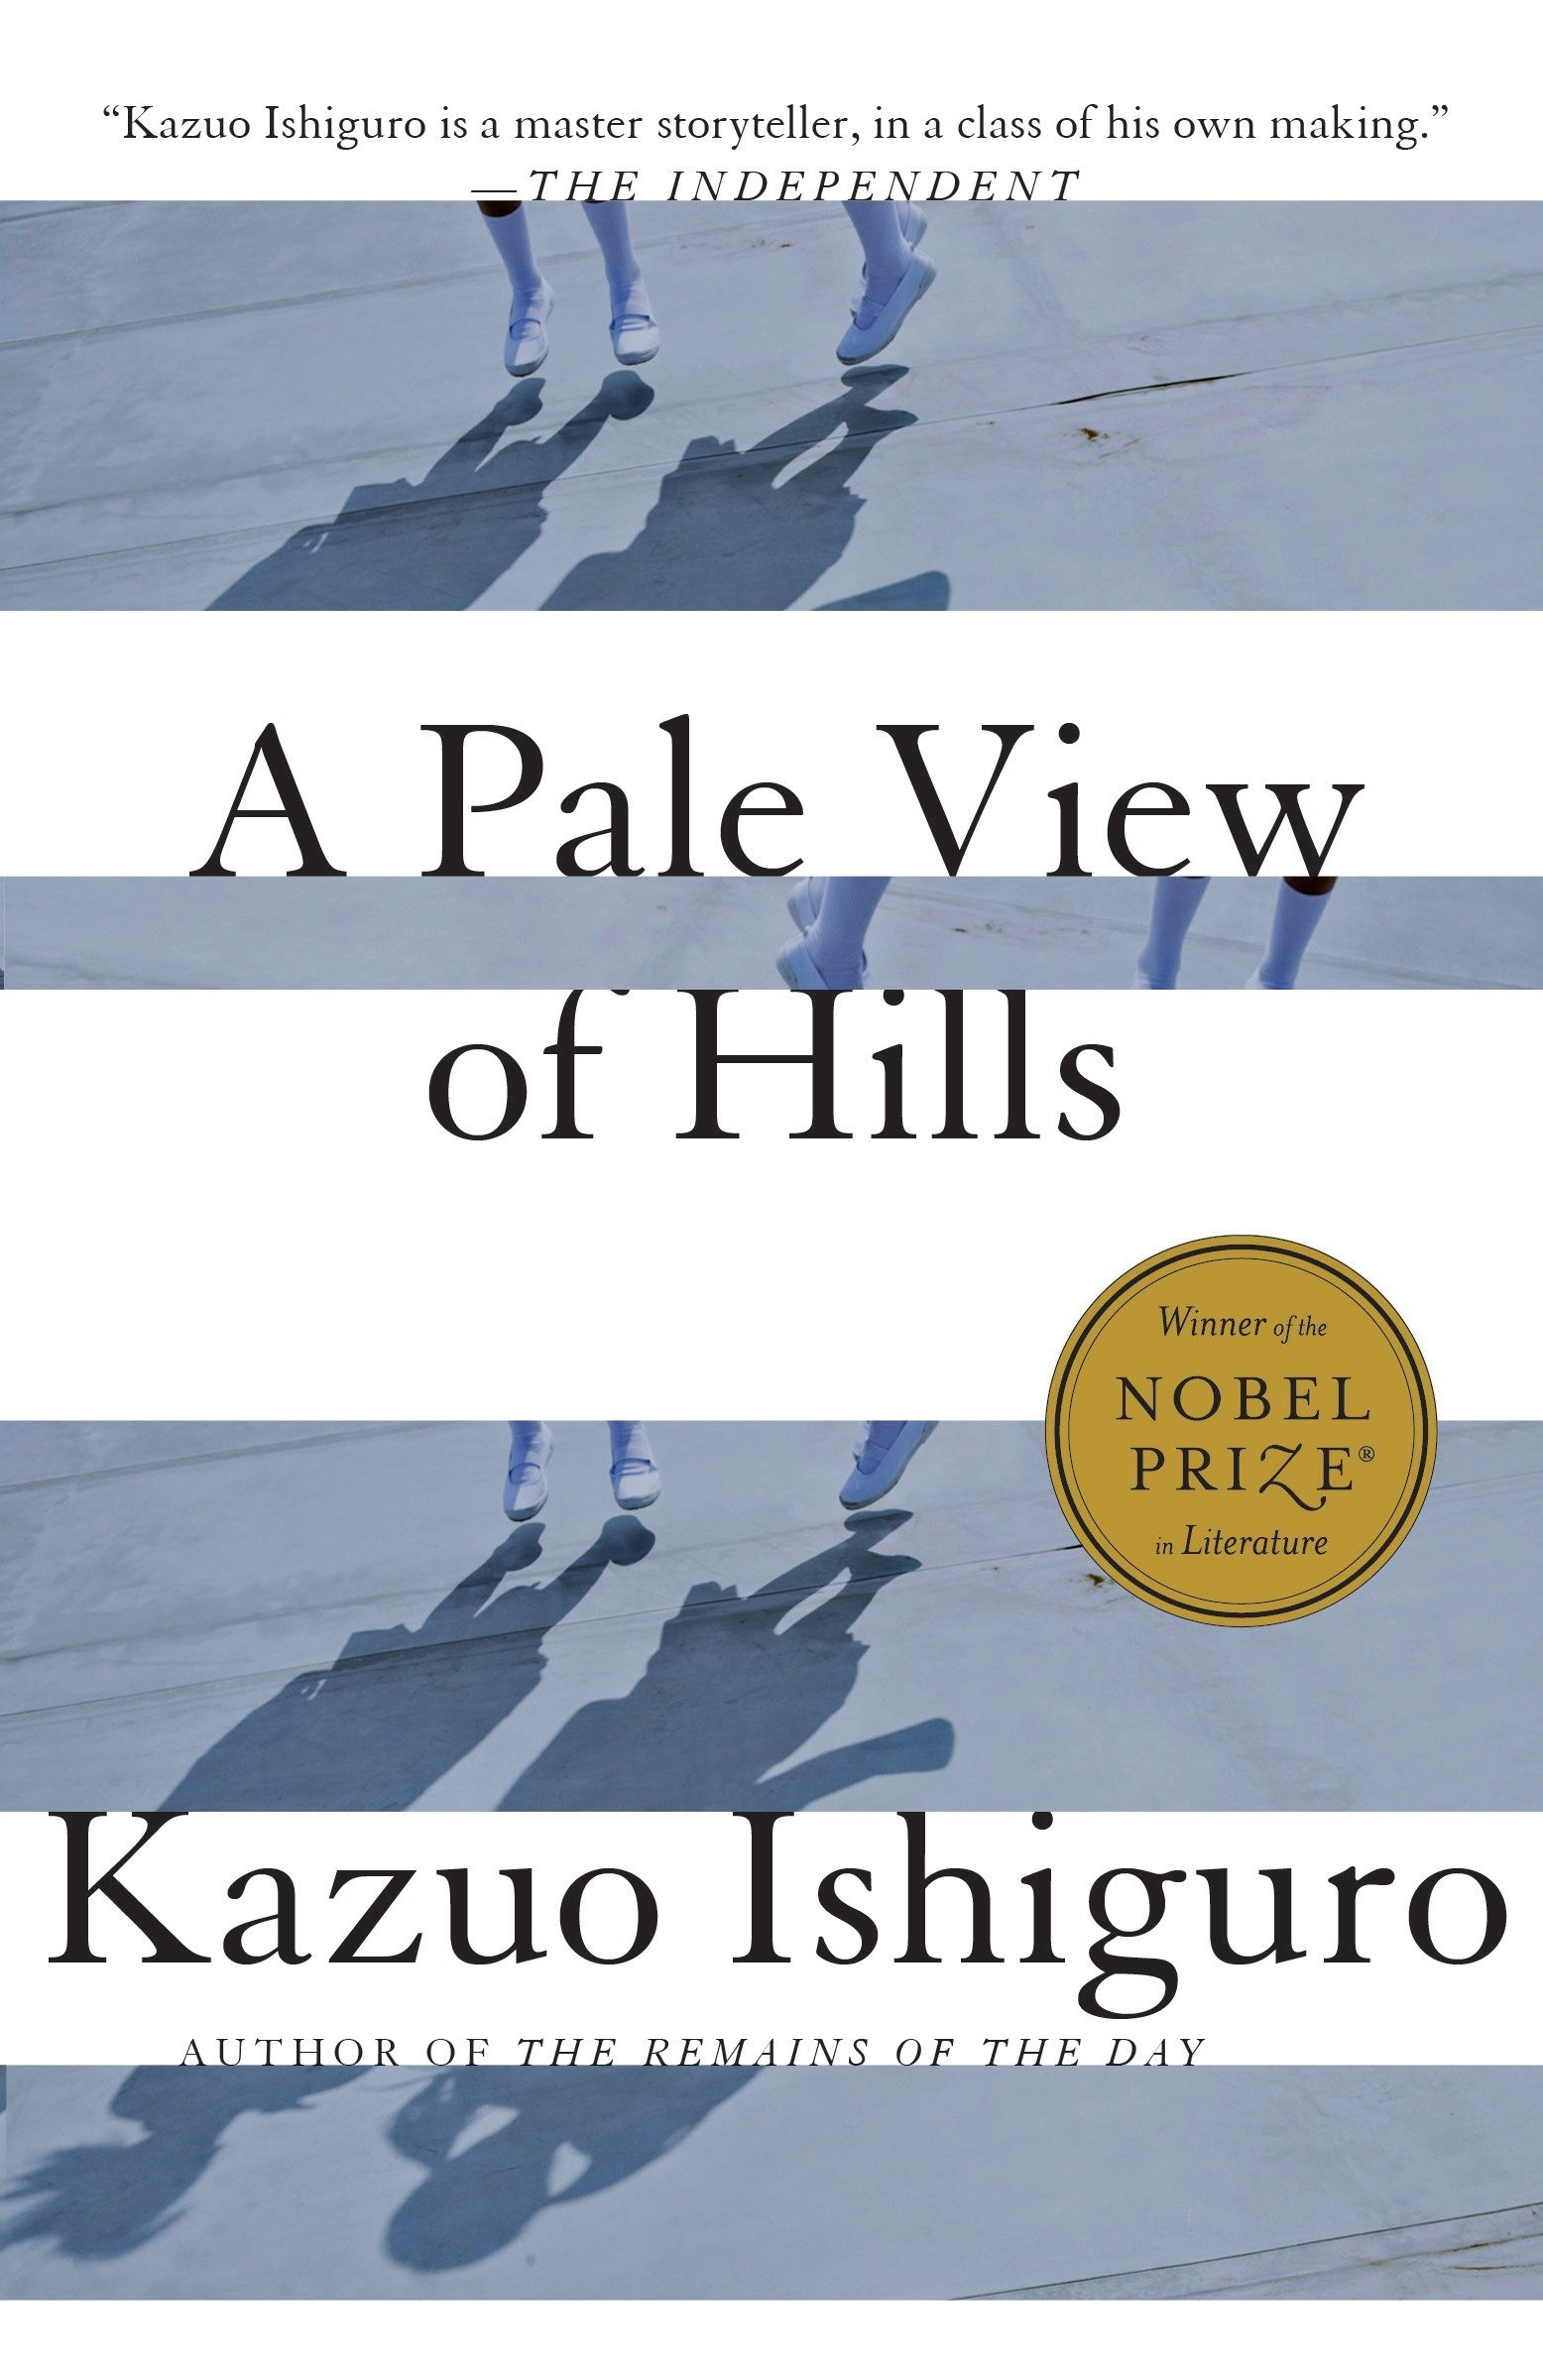 Kazuo Ishiguro, A Pale View of Hills